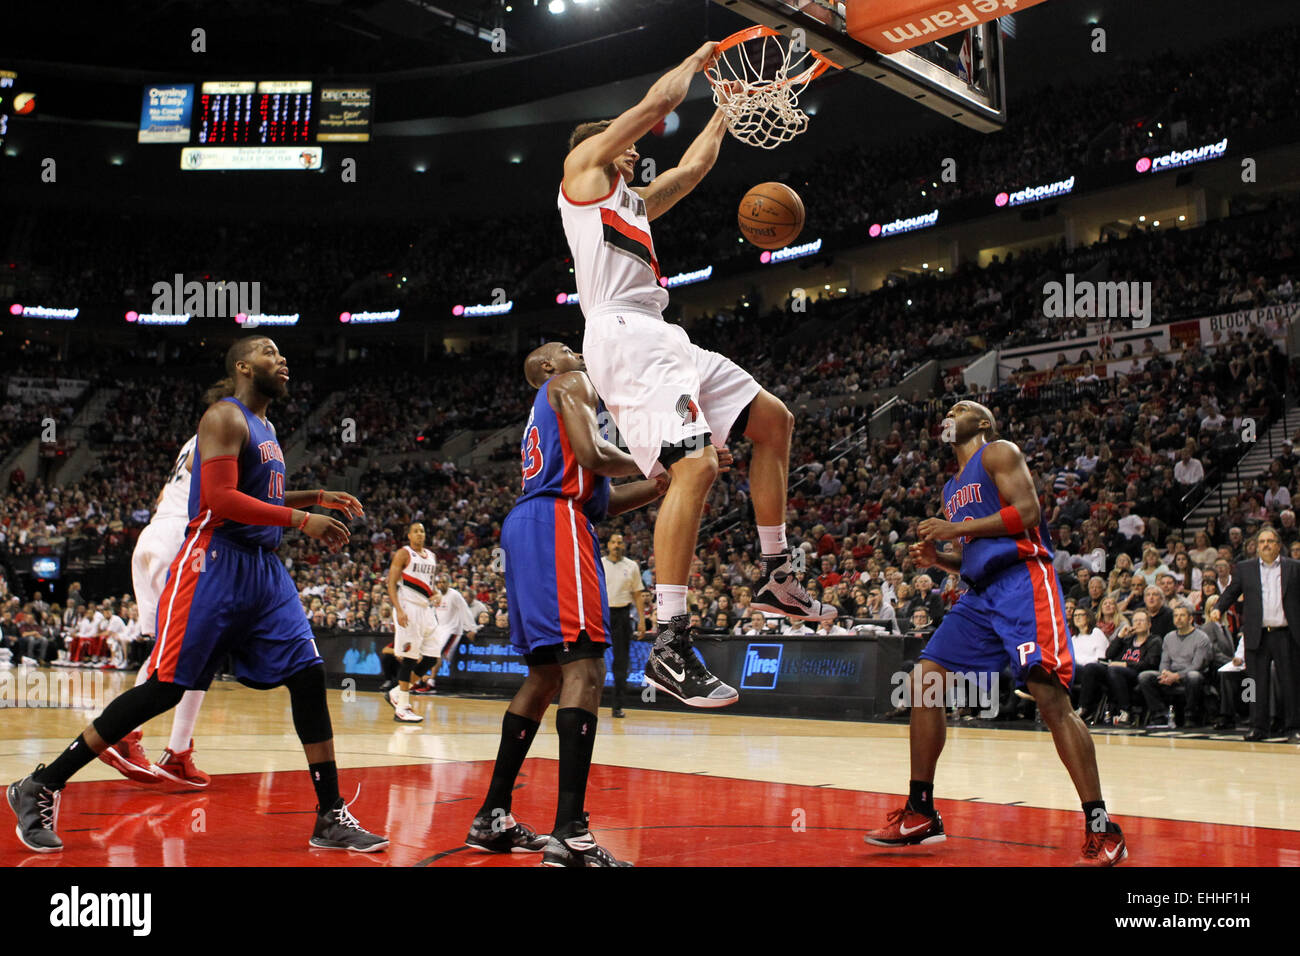 March 13, 2015 - MEYERS LEONARD (11) dunks the ball. The Portland Trail Blazers play the Detroit Pistons at the Stock Photo